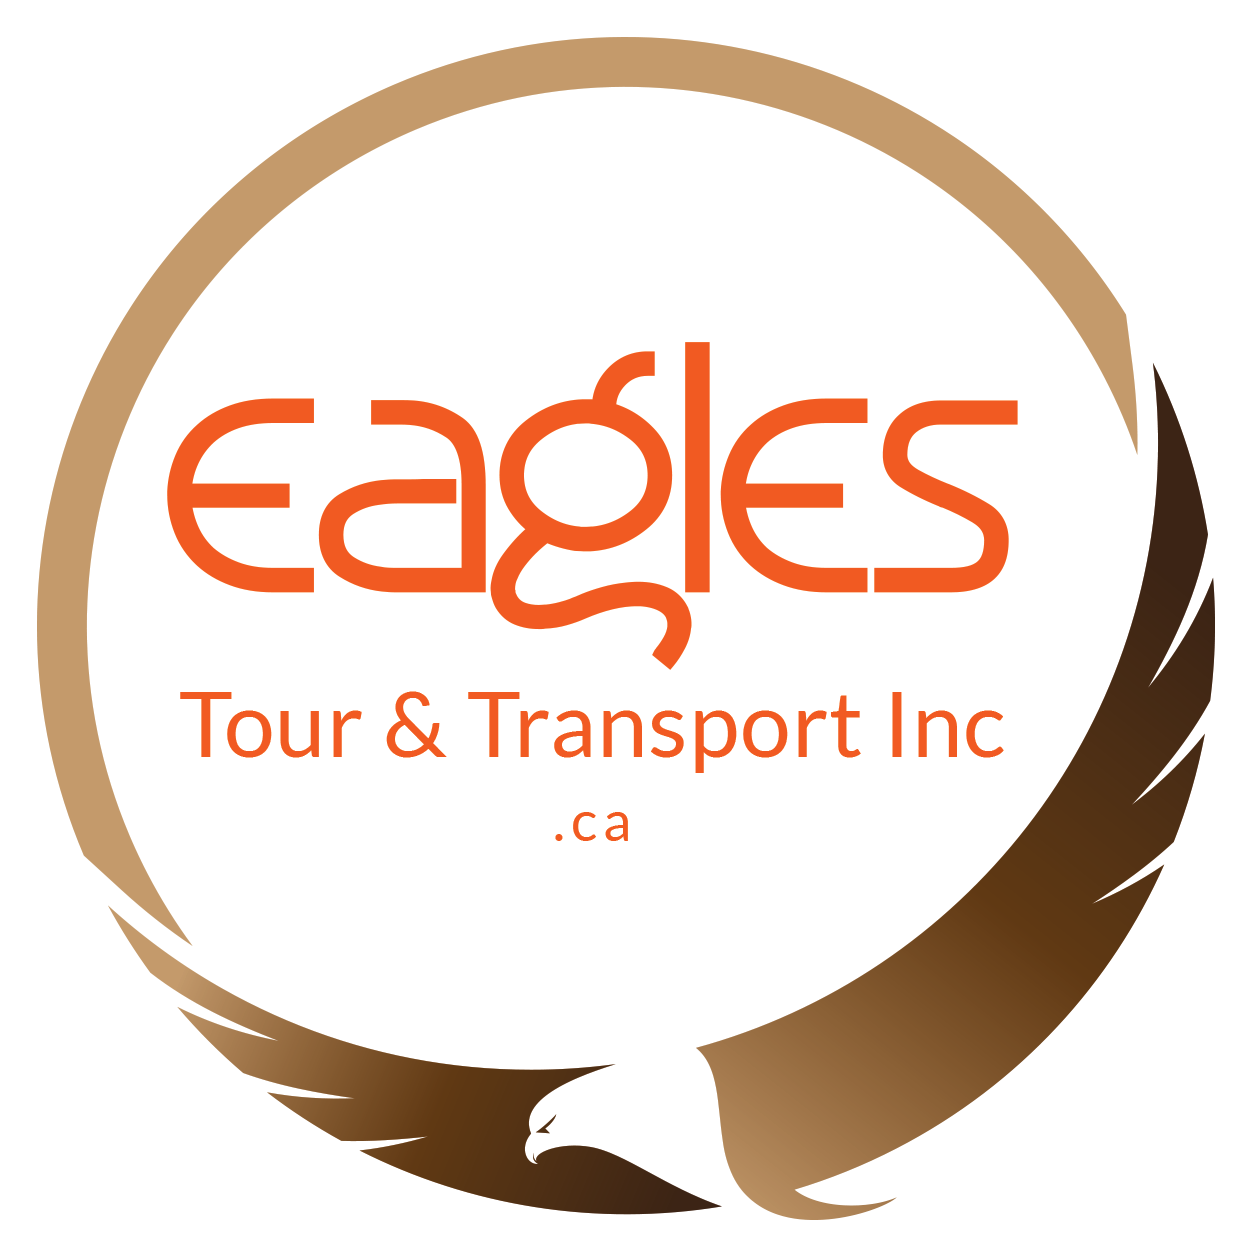 Eagles Tour & Transport Toronto